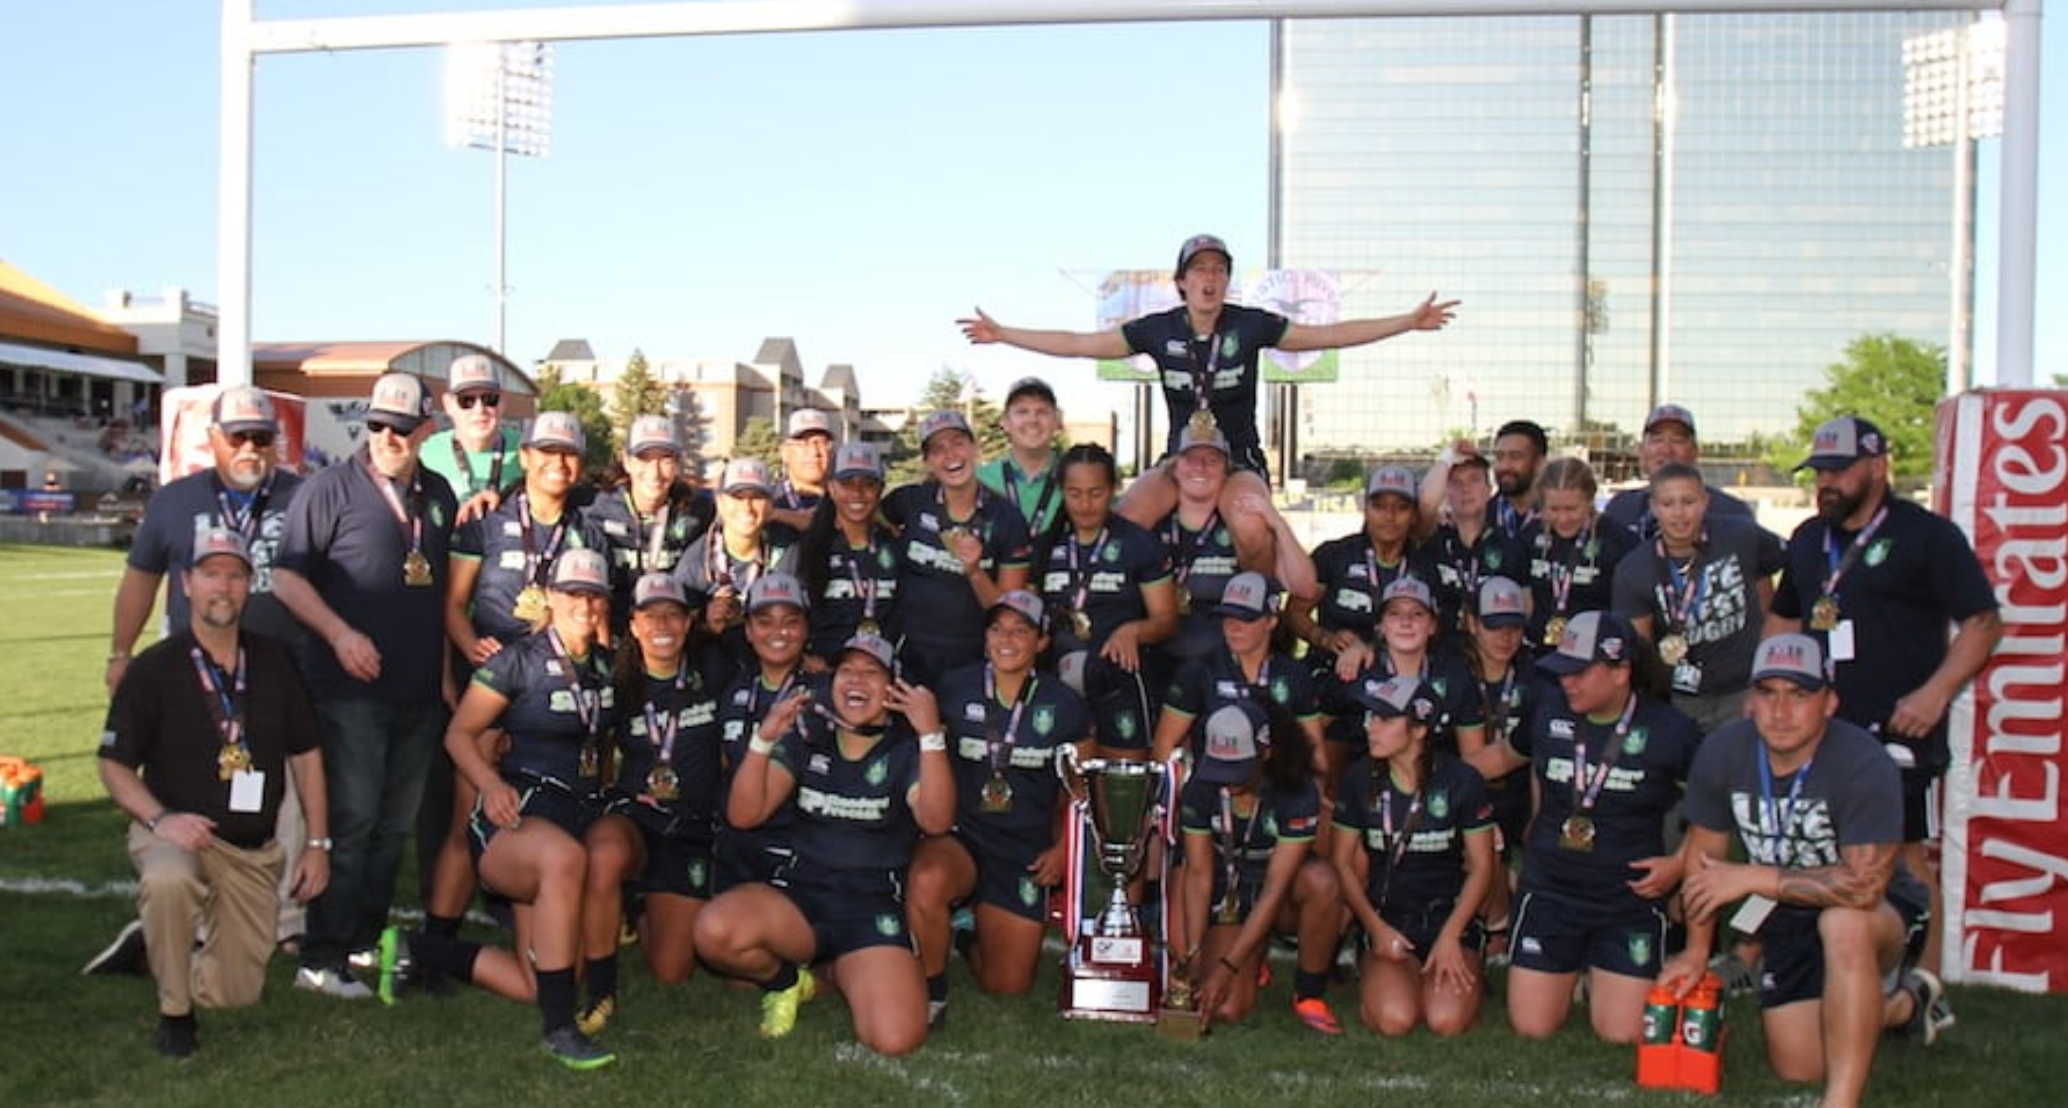 Life West Repeats as 2018 USA Rugby National Club Champion